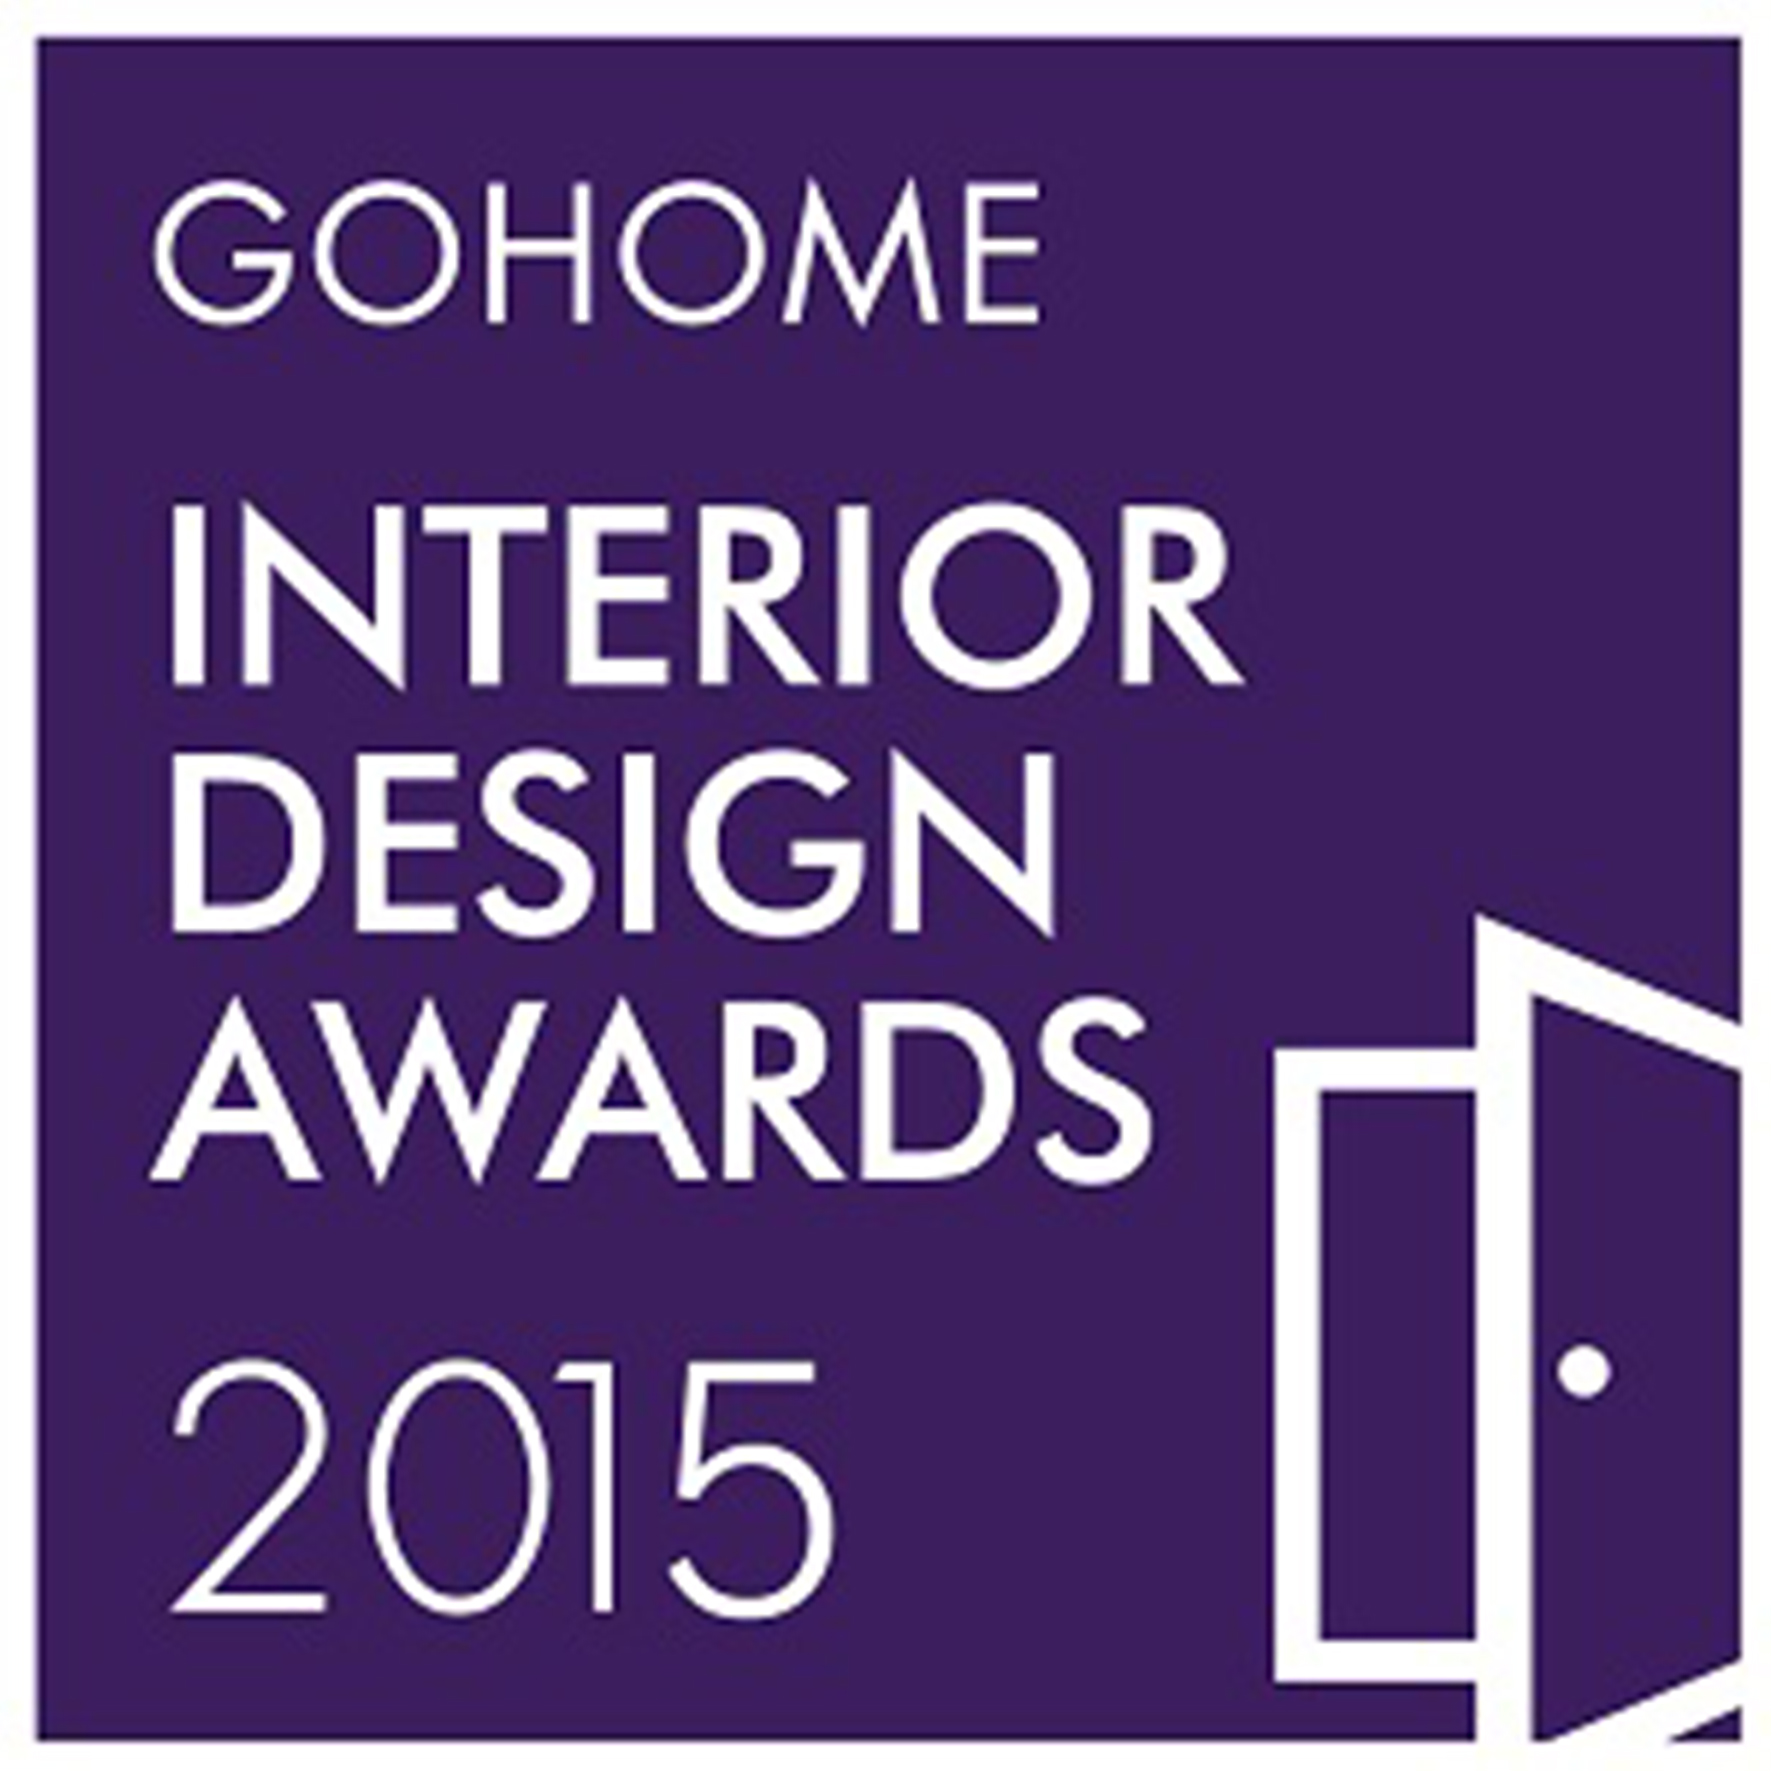 Best Luxurious Home Design, GO HOME Interior Awards 2015